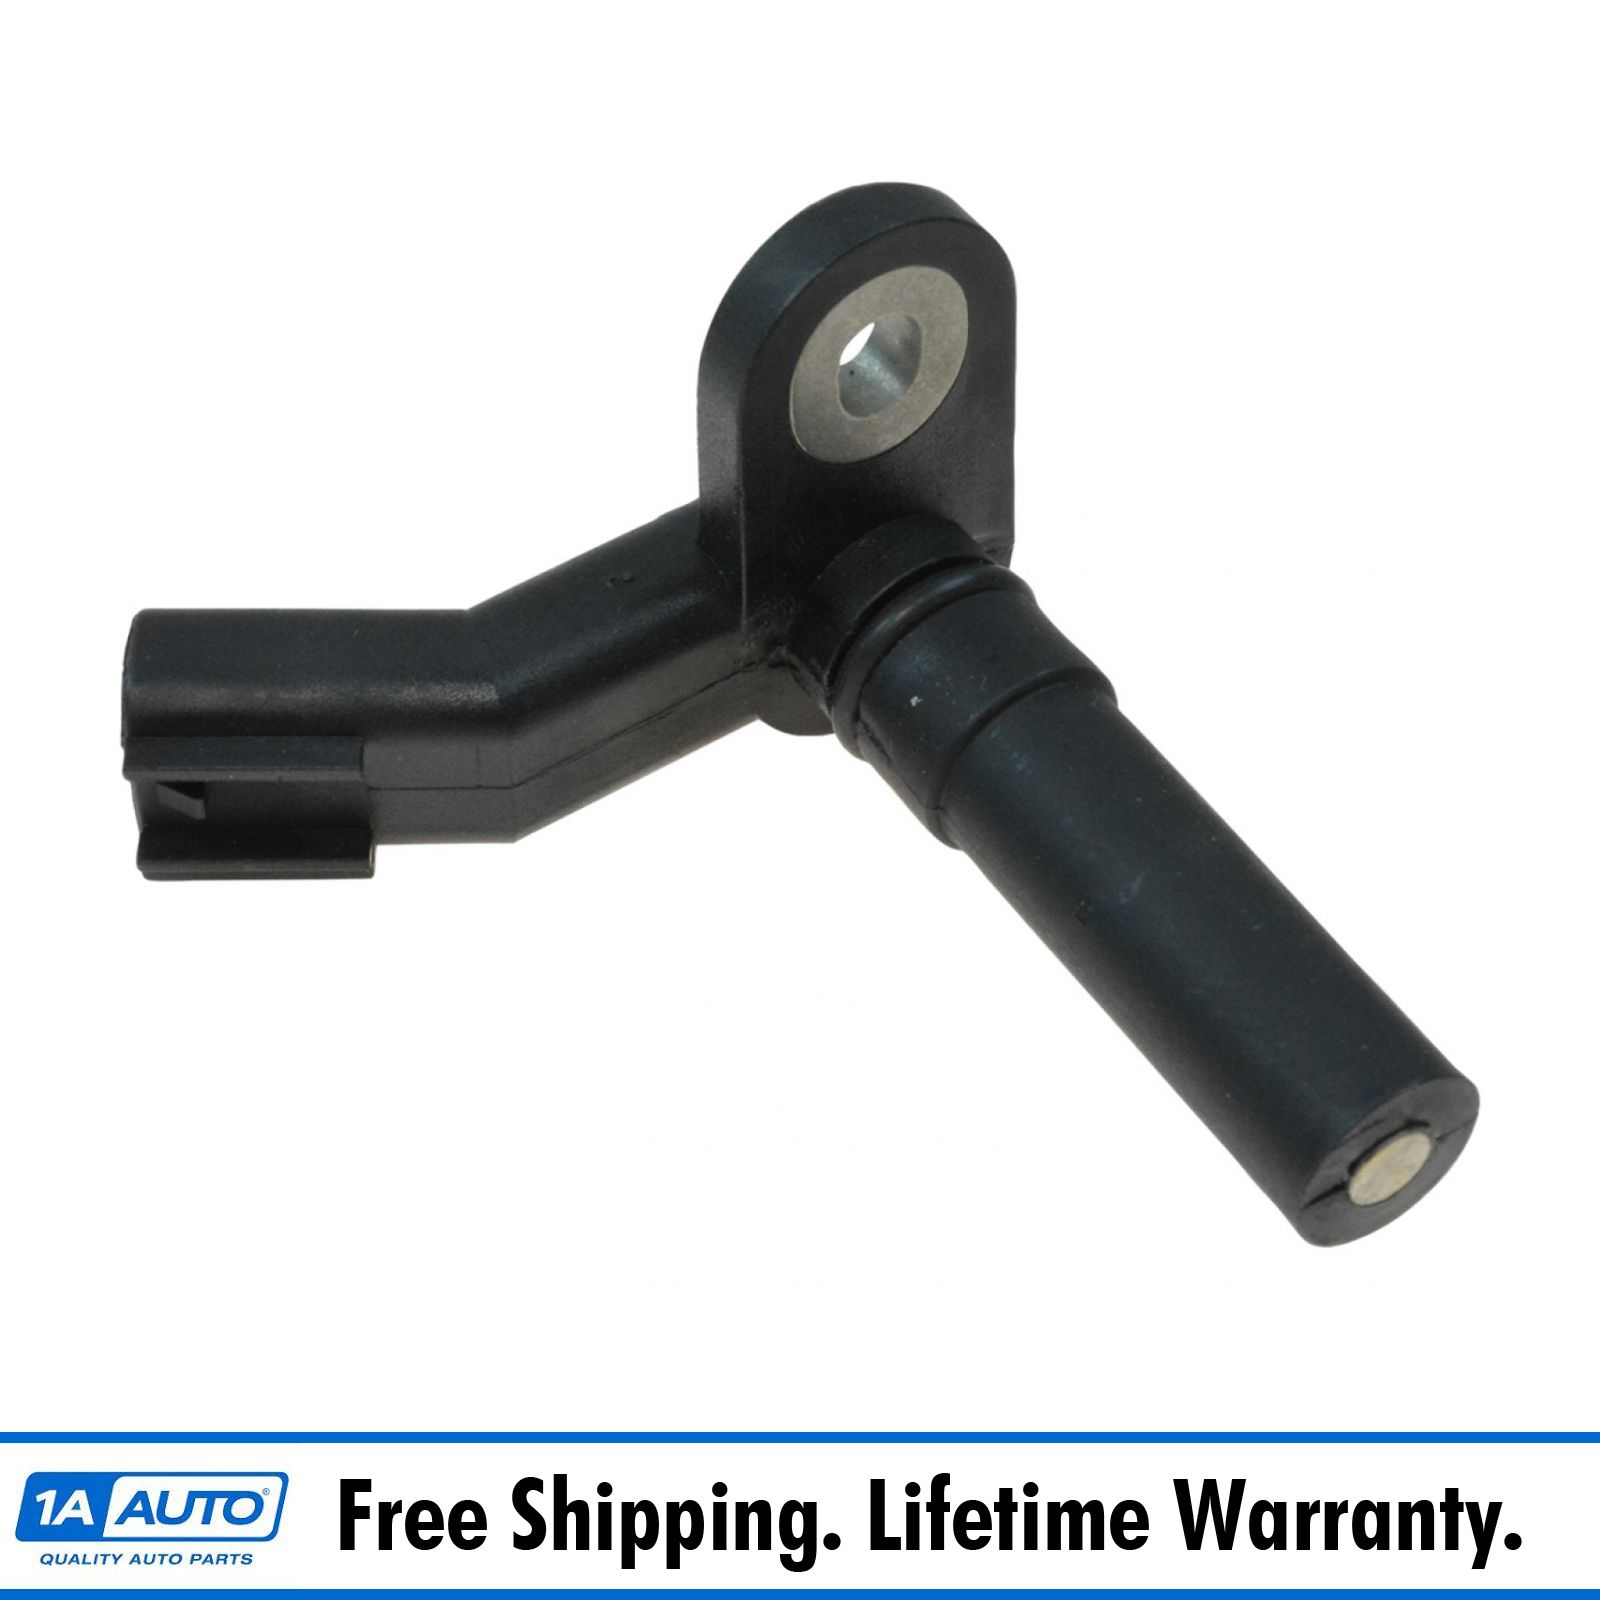 ACDelco PK179 Professional Rear Suspension Hardware Kit with Bolt and Nut